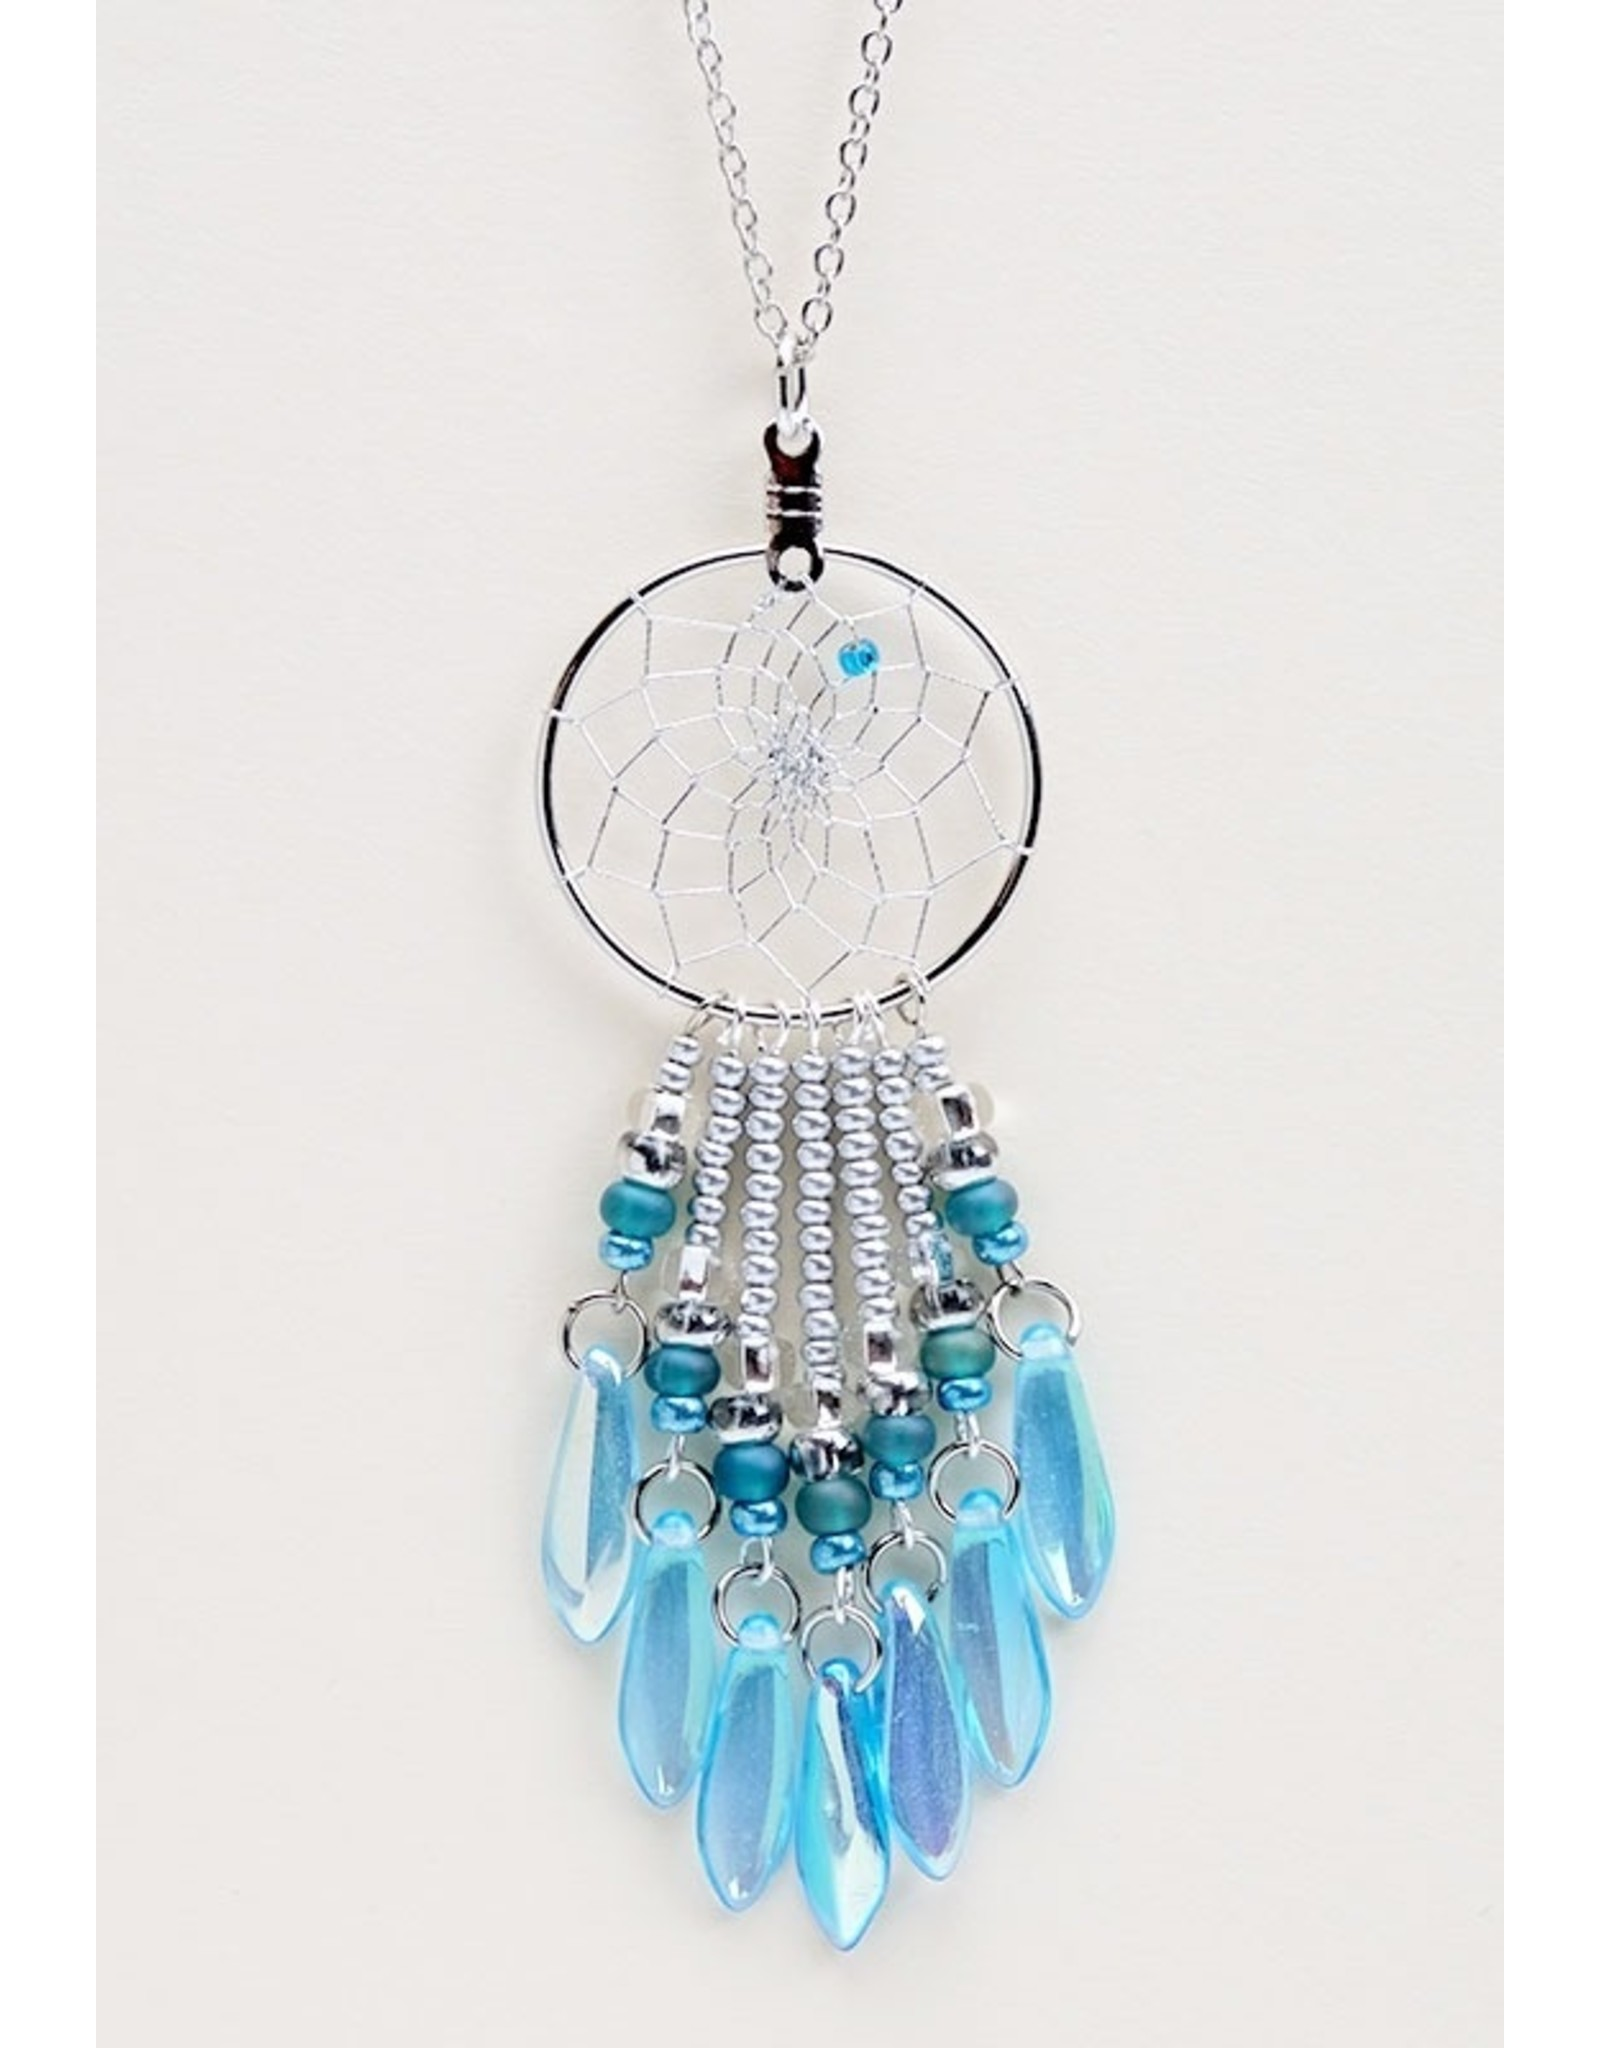 Dreamcatcher Necklace with Beads - DC20-P